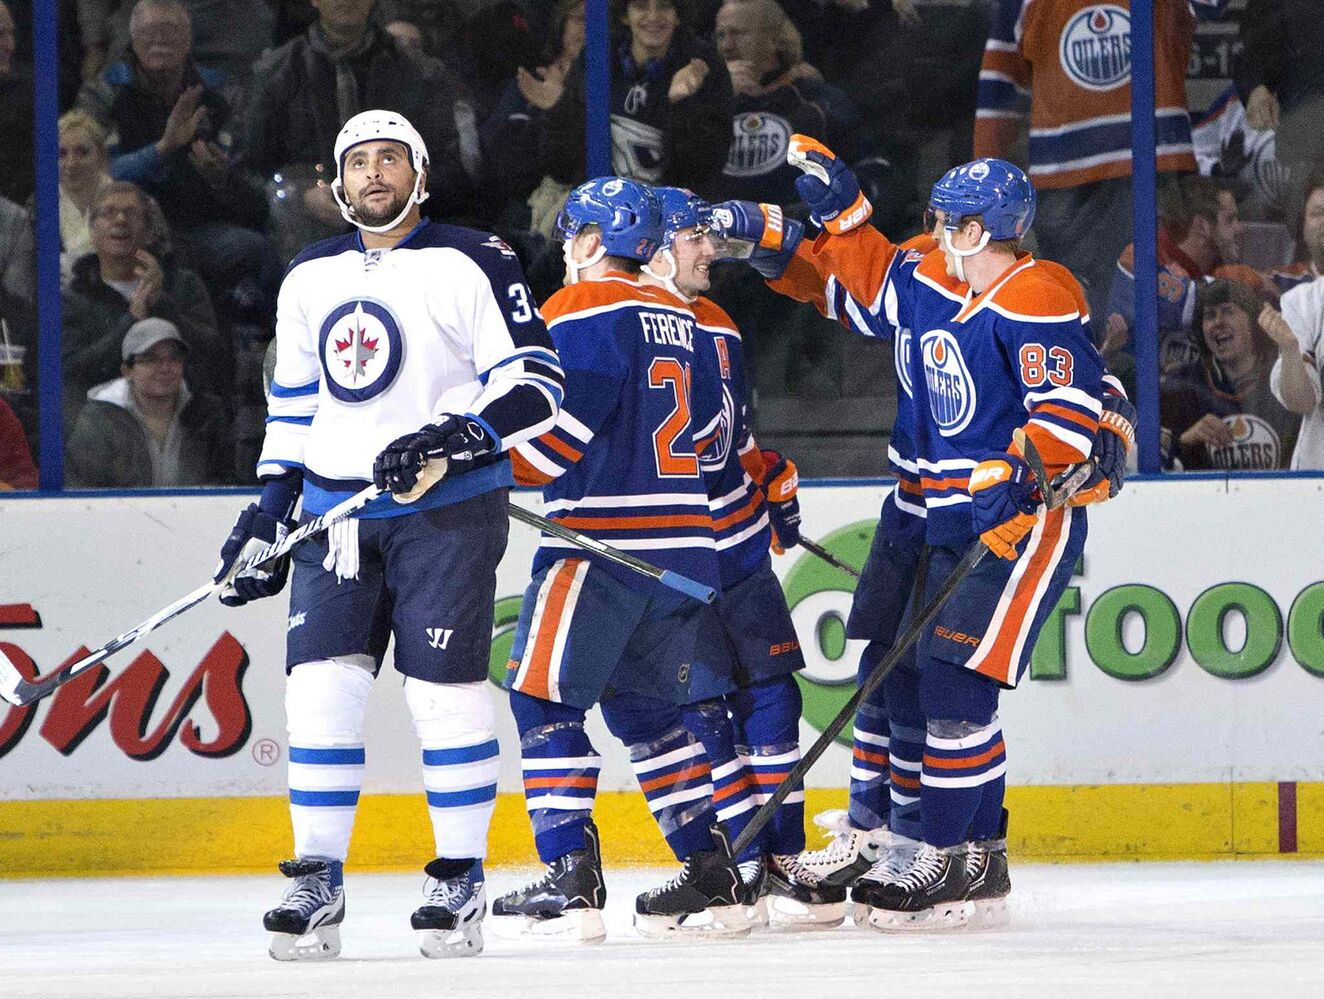 Winnipeg Jets' Dustin Byfuglien (33) looks on as Edmonton Oilers' Andrew Ference (21), Jordan Eberle (14) and Ales Hemsky (83) celebrate a goal during first period NHL hockey action in Edmonton on Monday.